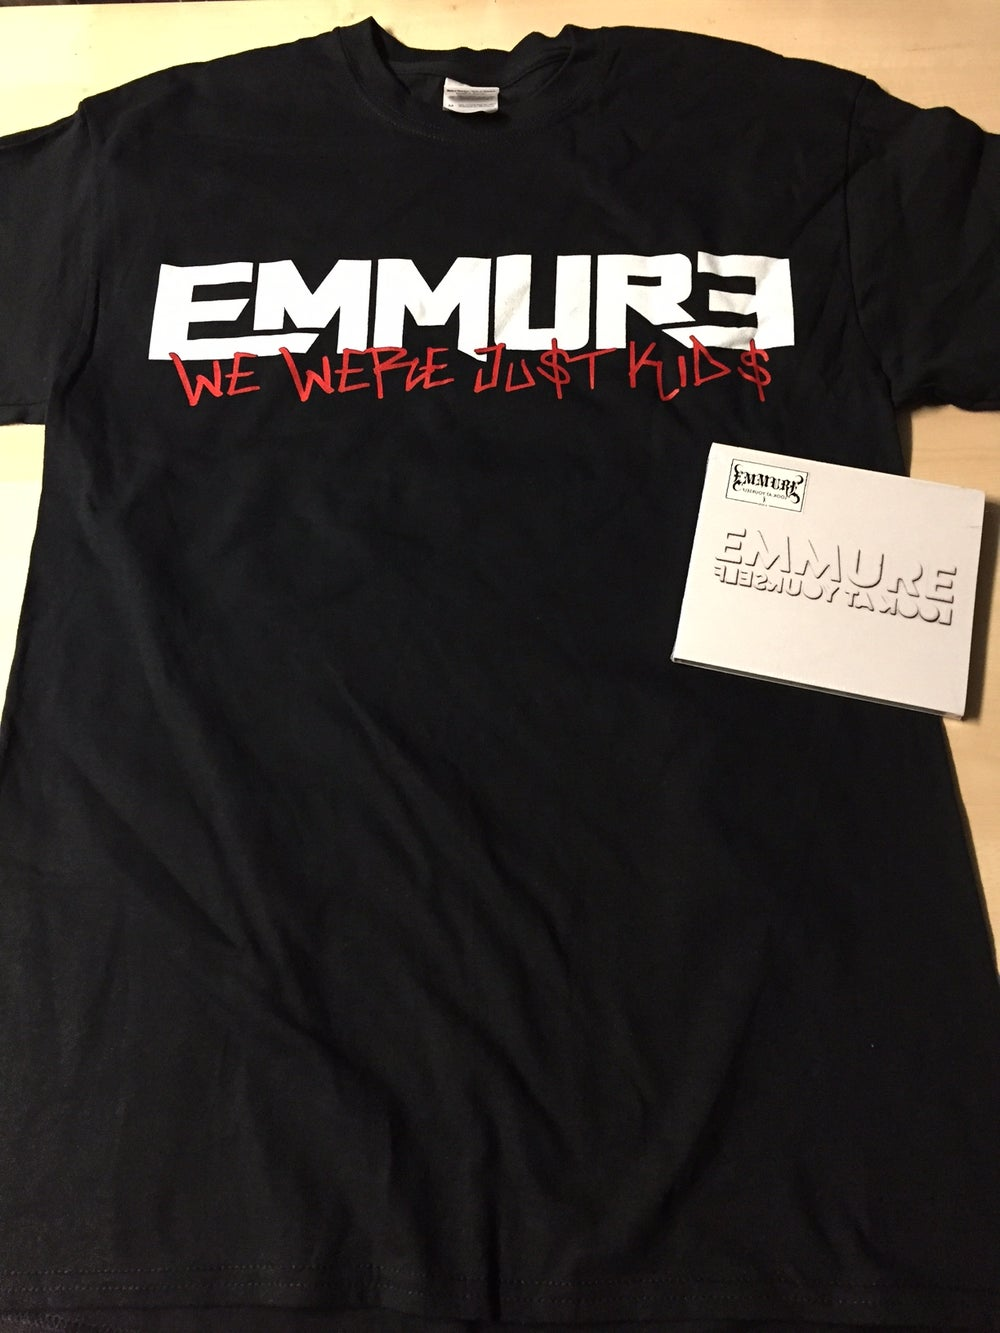 EMMURE - LOOK AT YOURSELF - CD/SHIRT COMBO DEAL #6 SIZE S, M, L & XL